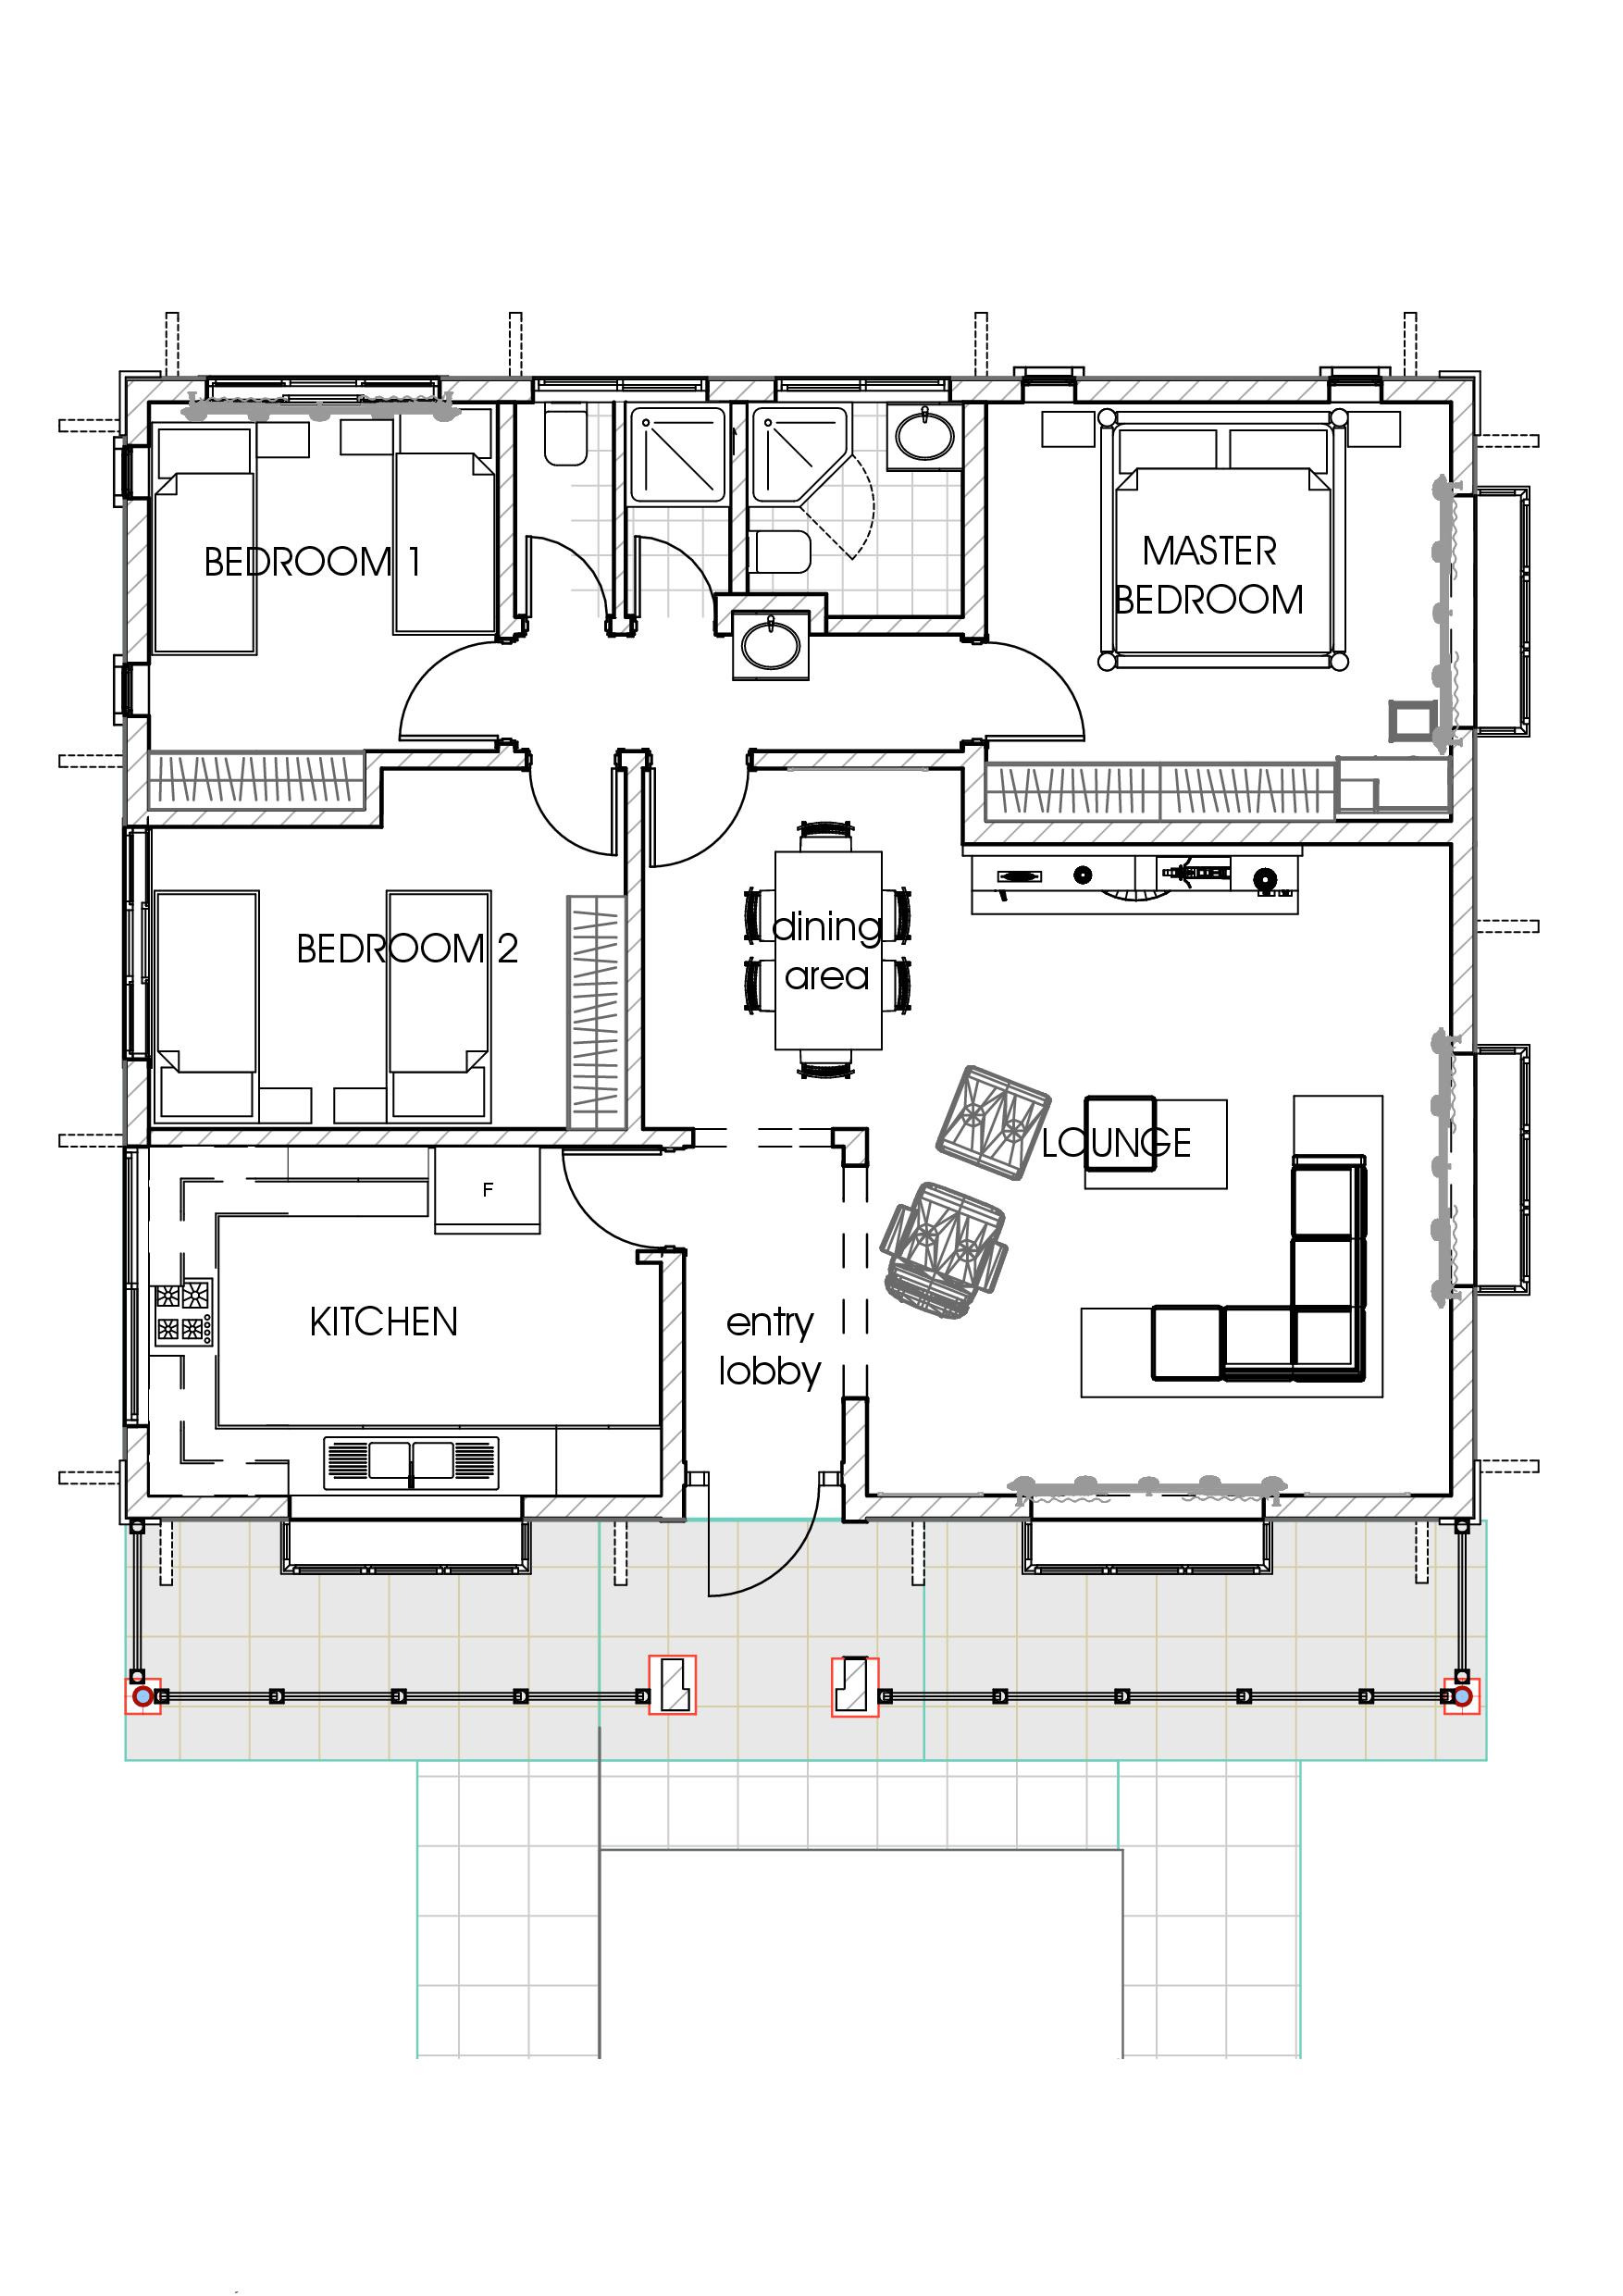 house plans in kenya the concise 3 bedroom bungalow house plan